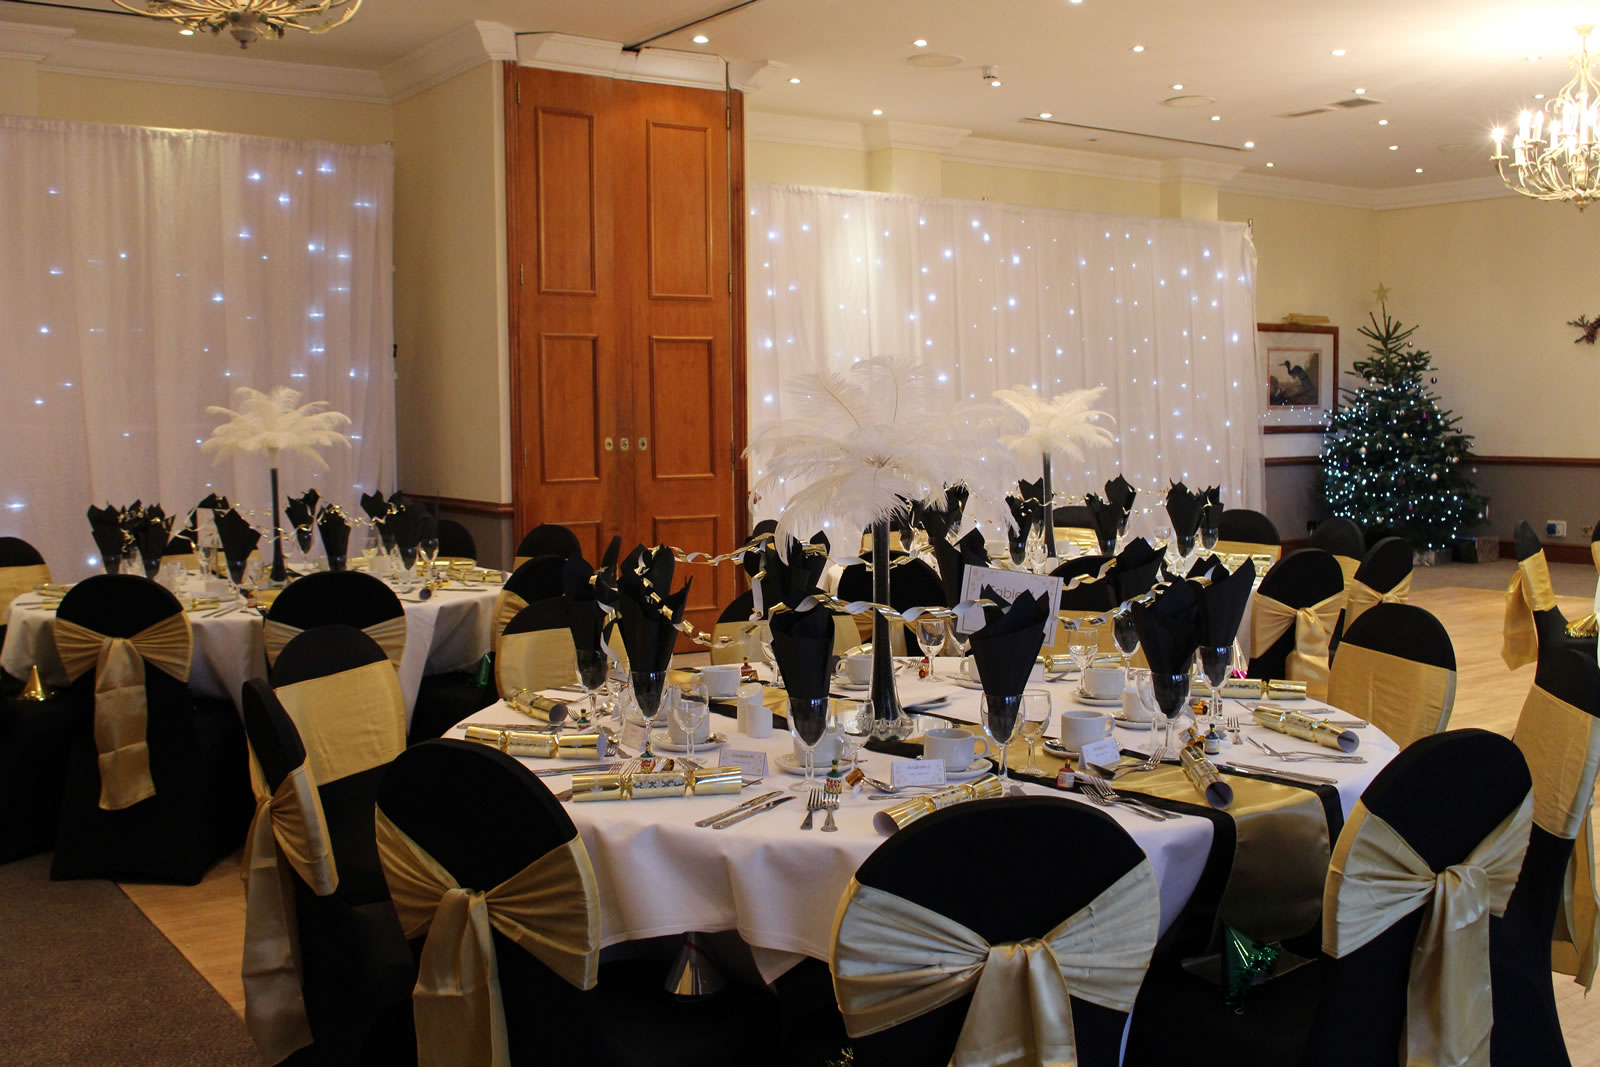 Weybridge Function room for Parties and Celebrations including Birthday and Christmas Parties